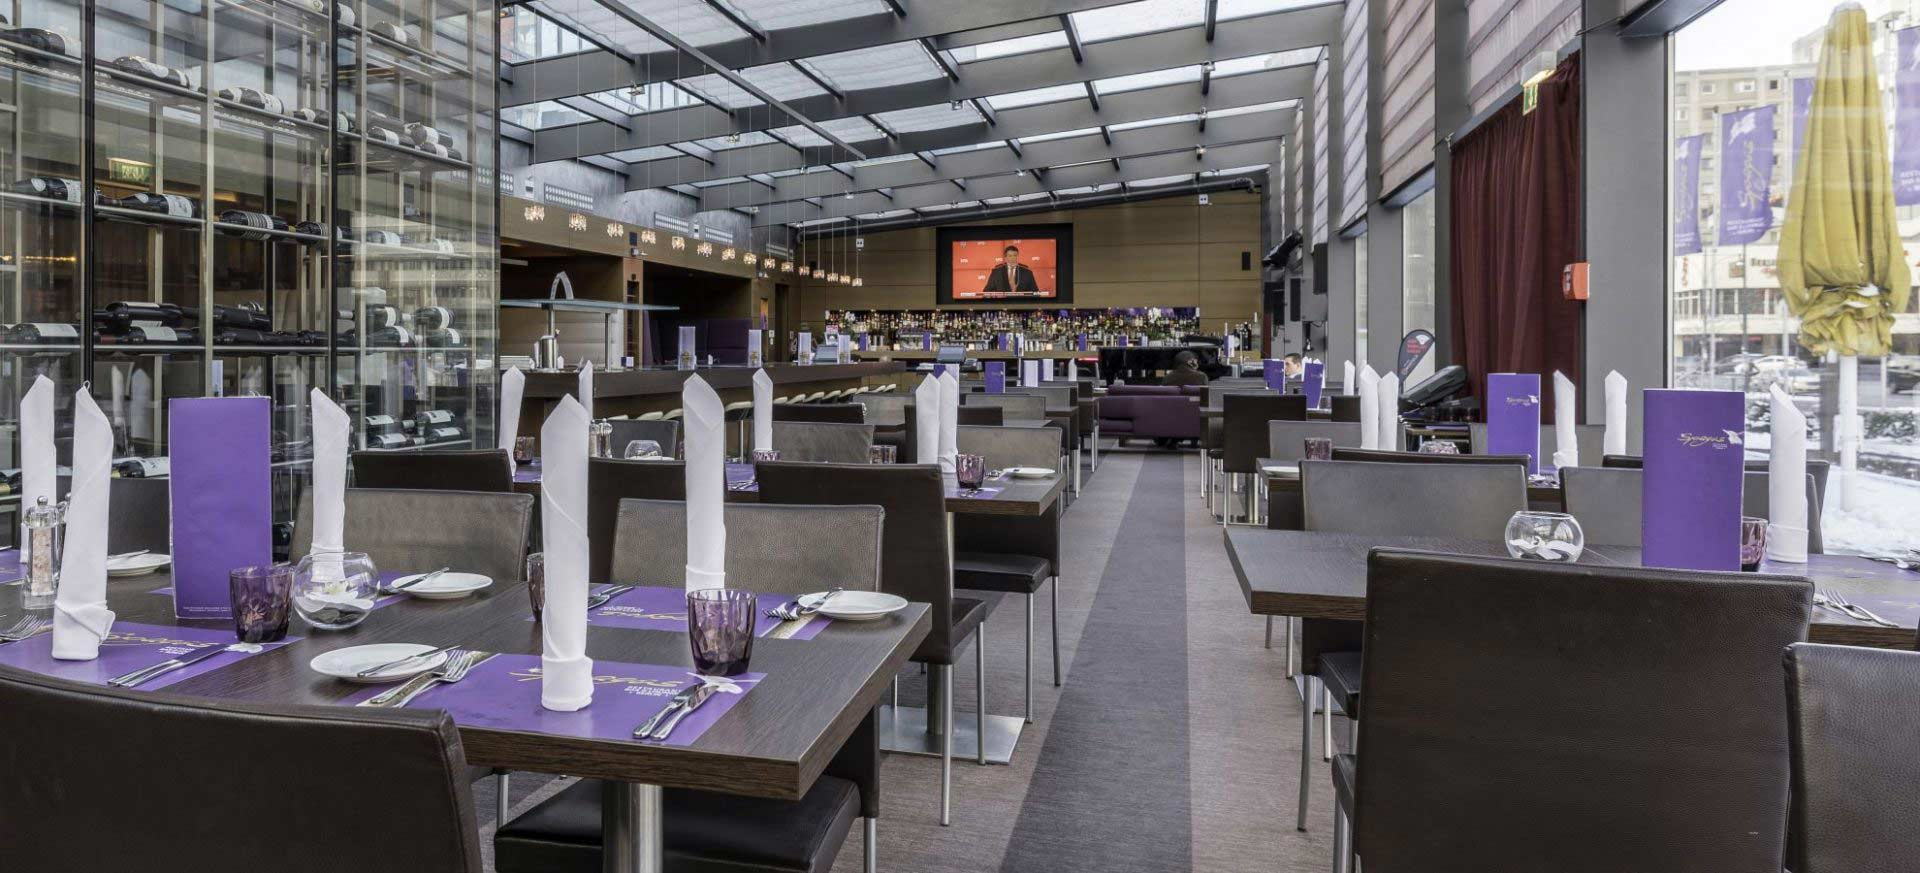 Park-Inn-by-Radisson-Hotel-Berlin-Alexanderplatz-Restaurant-Spagos